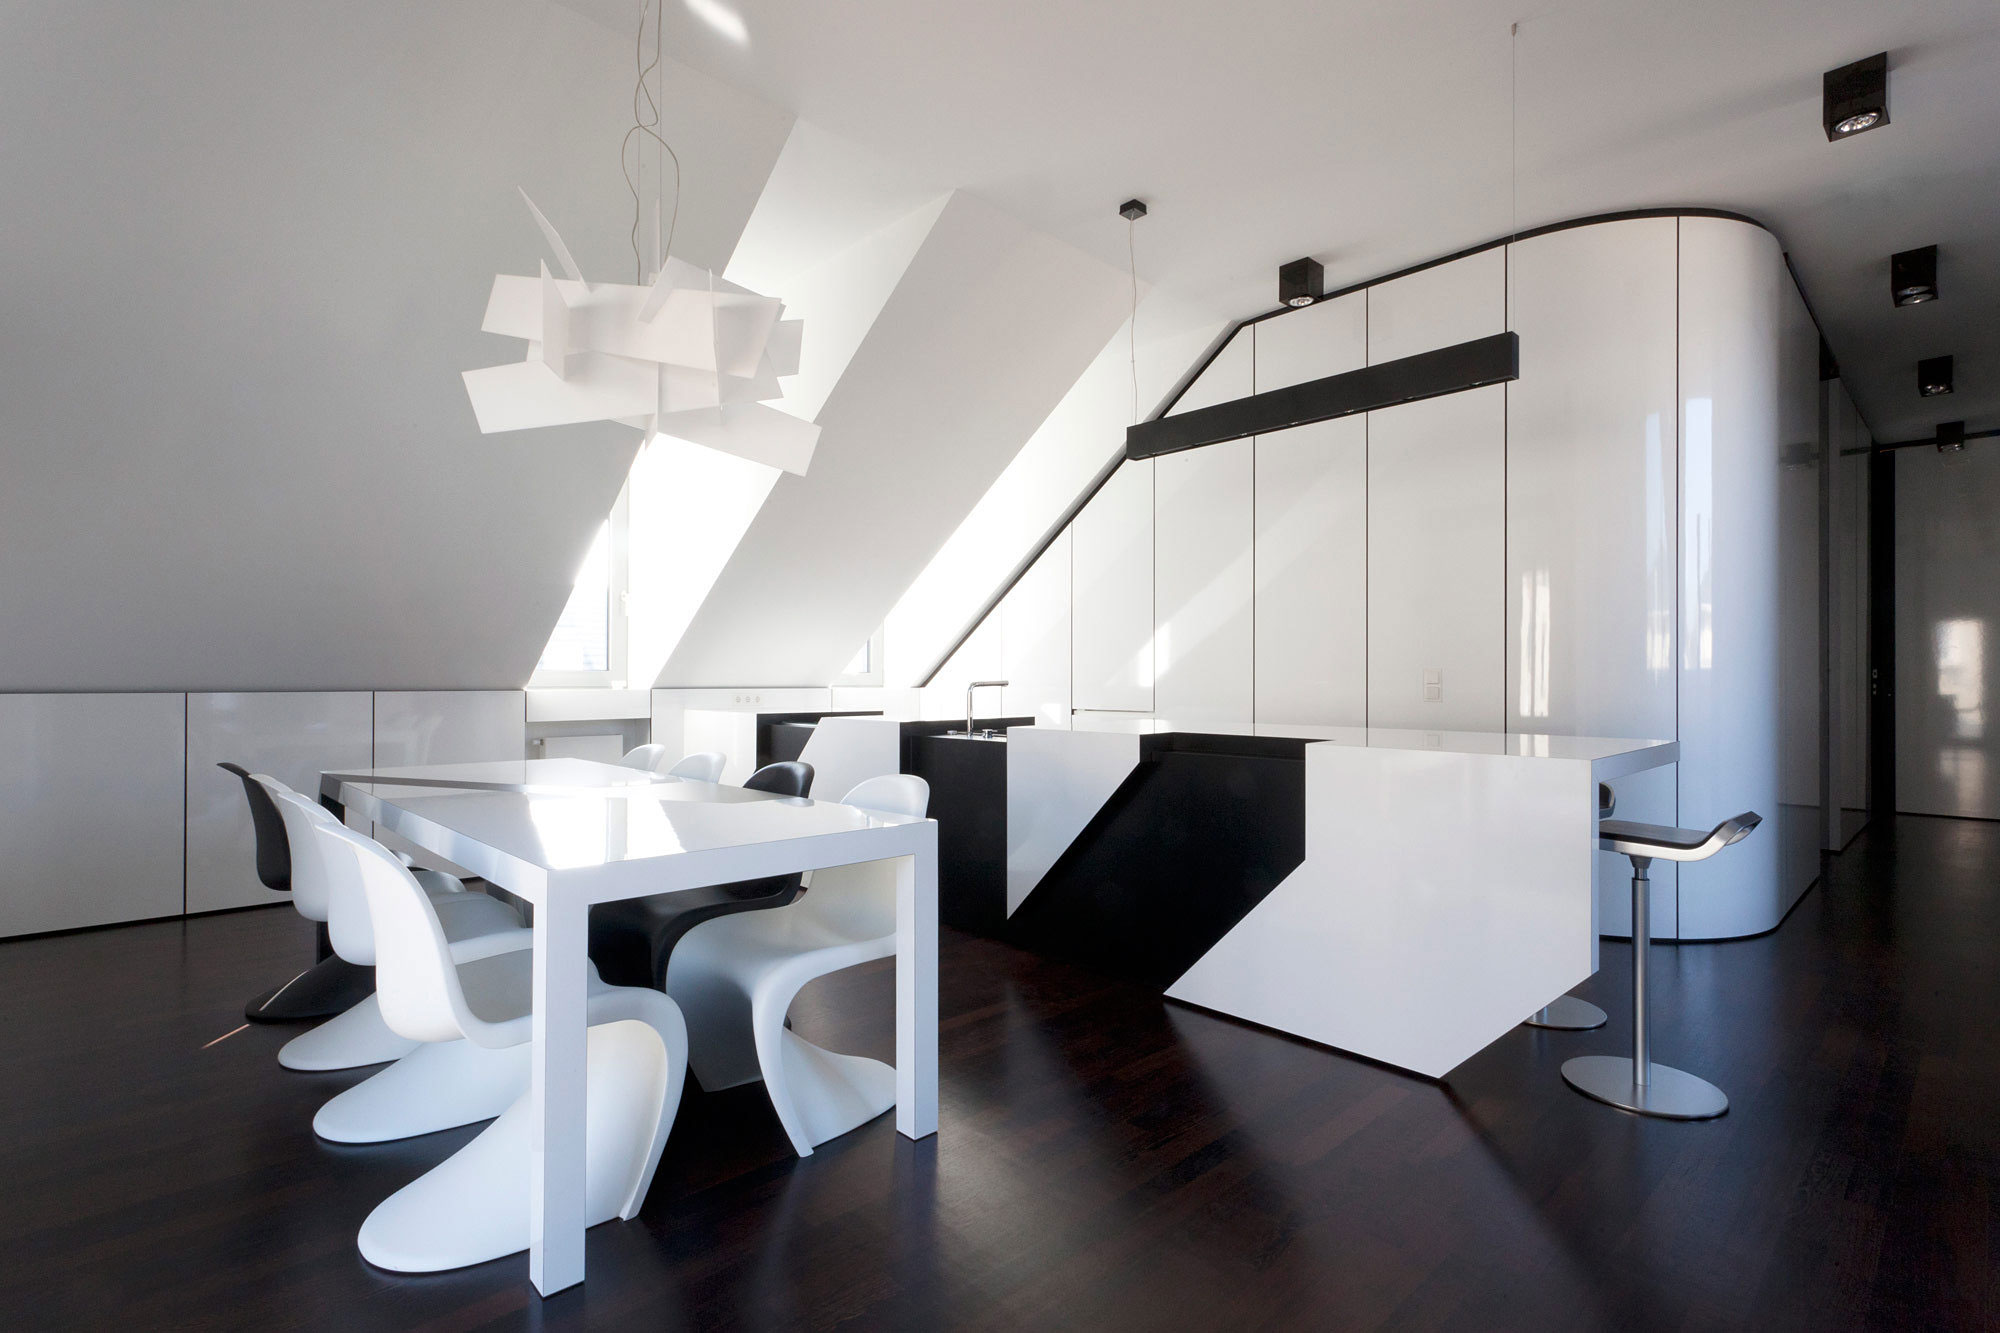 NIC by n-lab architects